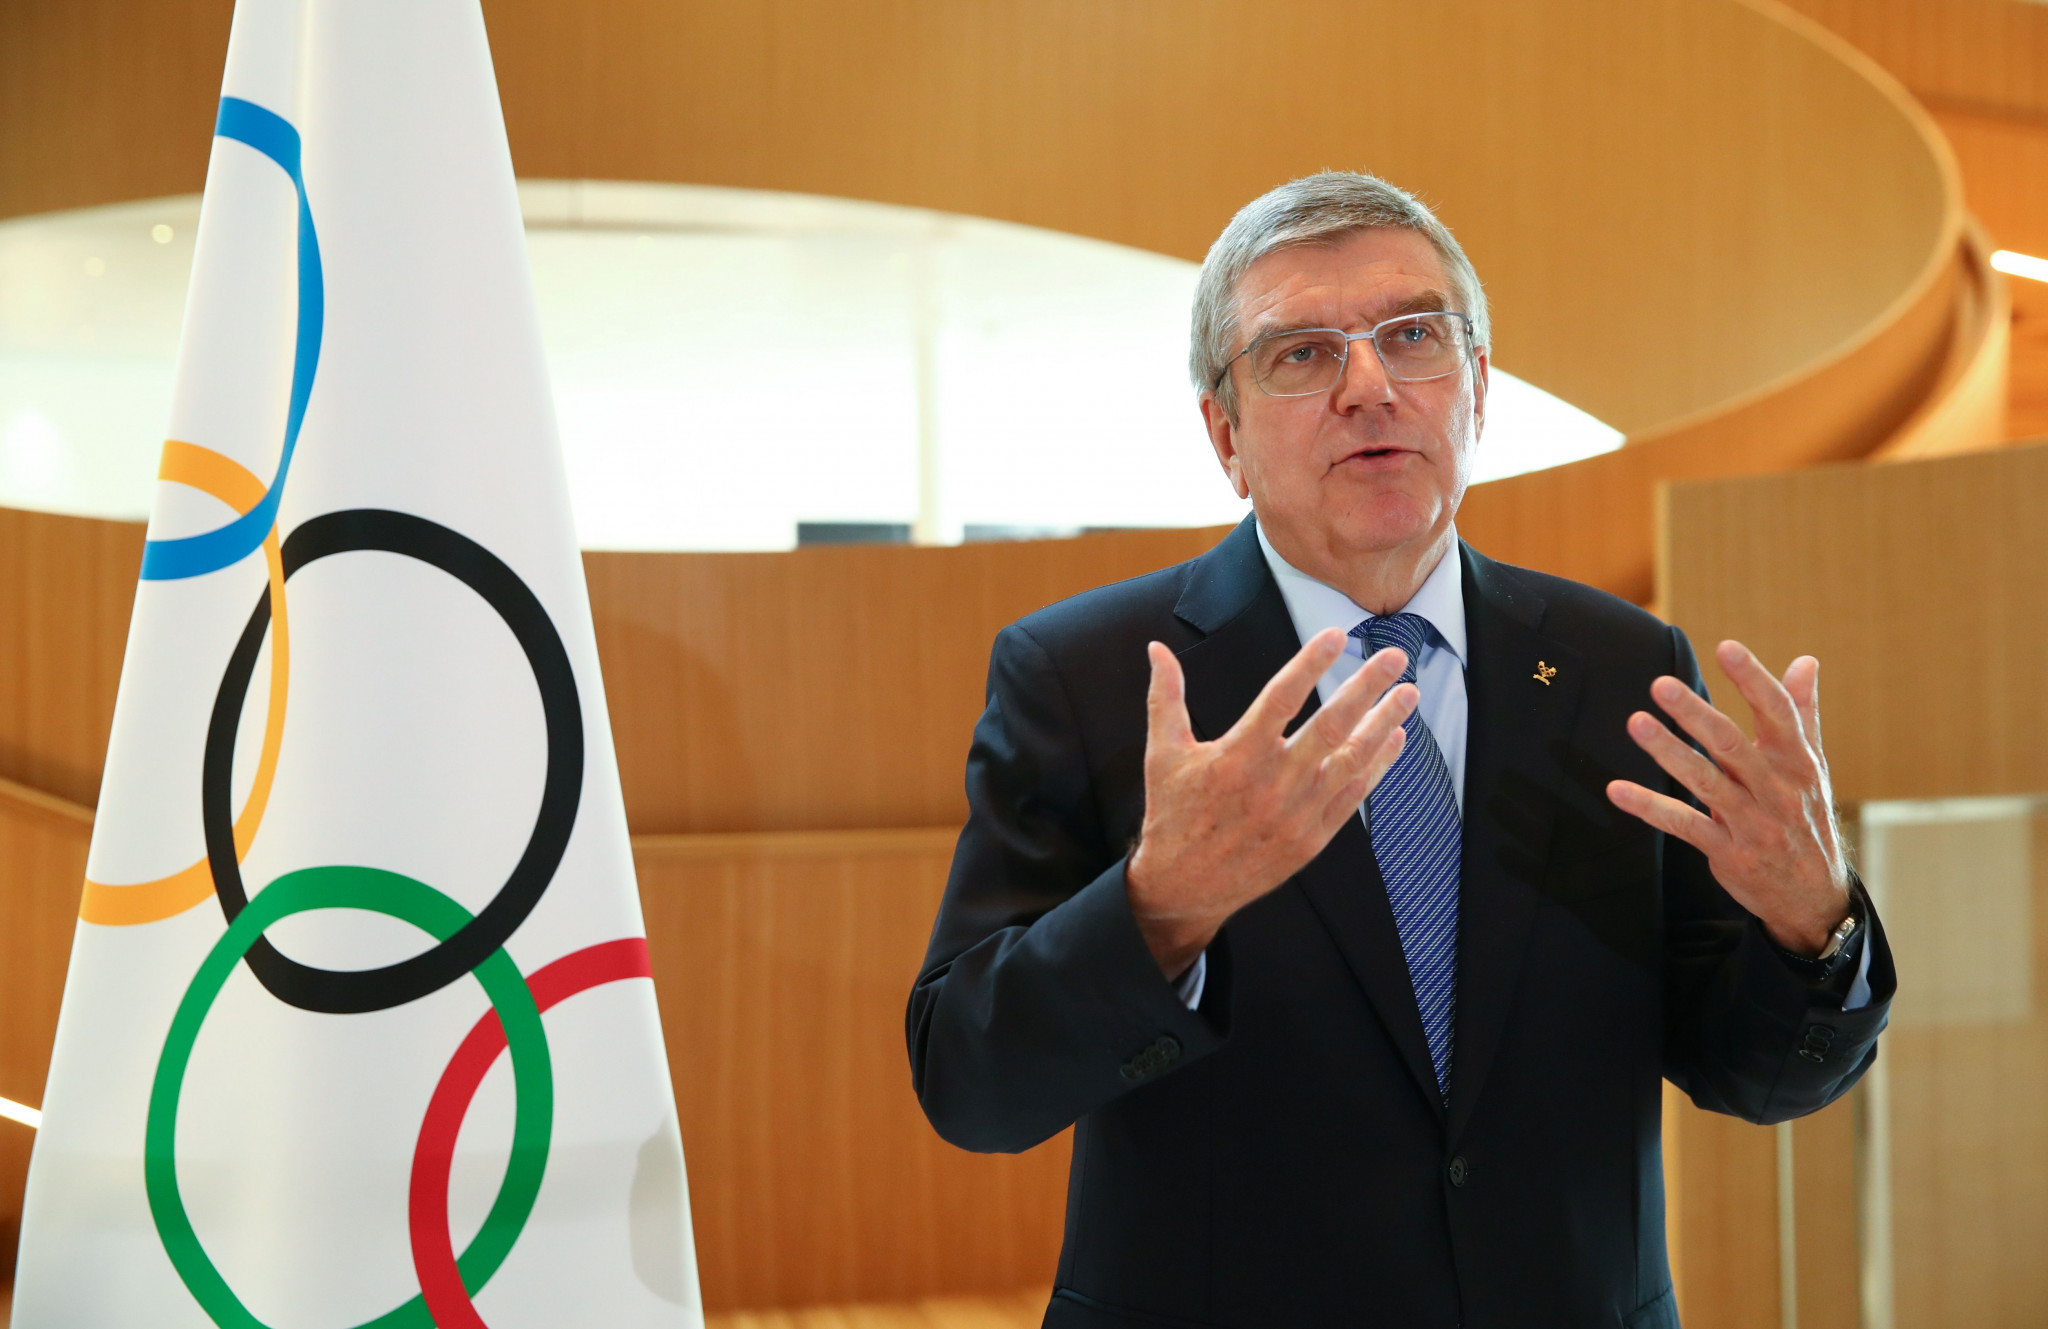 Thomas Bach says the Olympic Games will reflect the post-pandemic world ©Getty Images